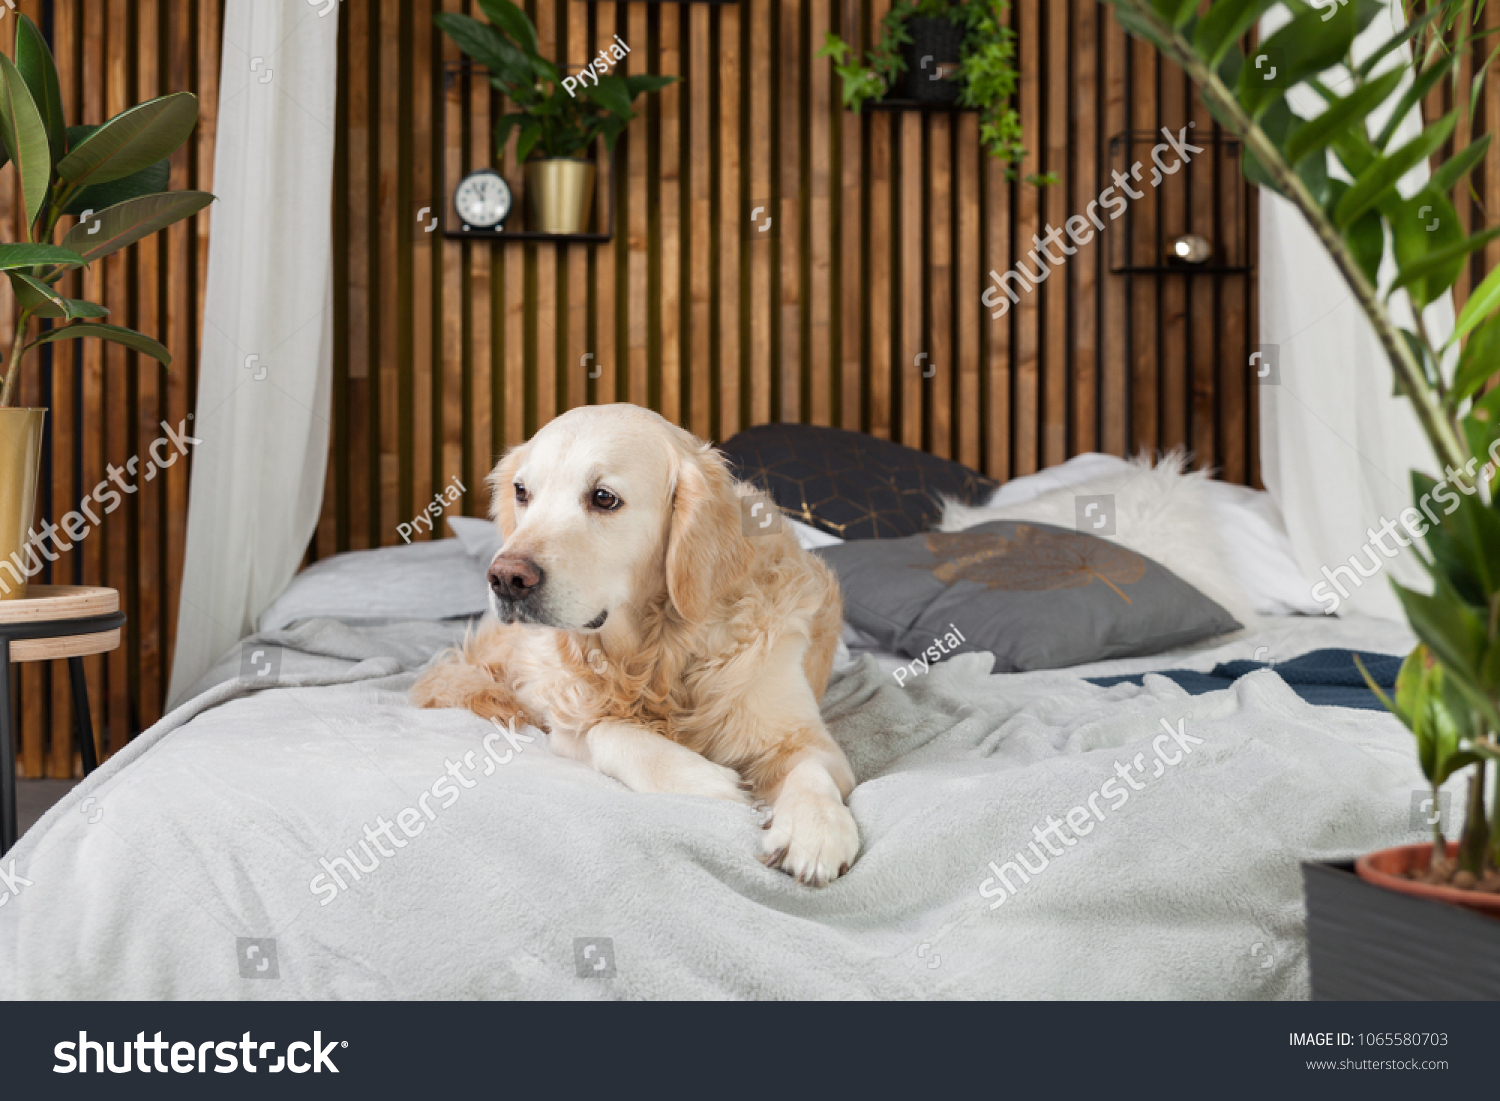 Golden Retriever Pure Breed Puppy Dog Stock Photo Edit Now